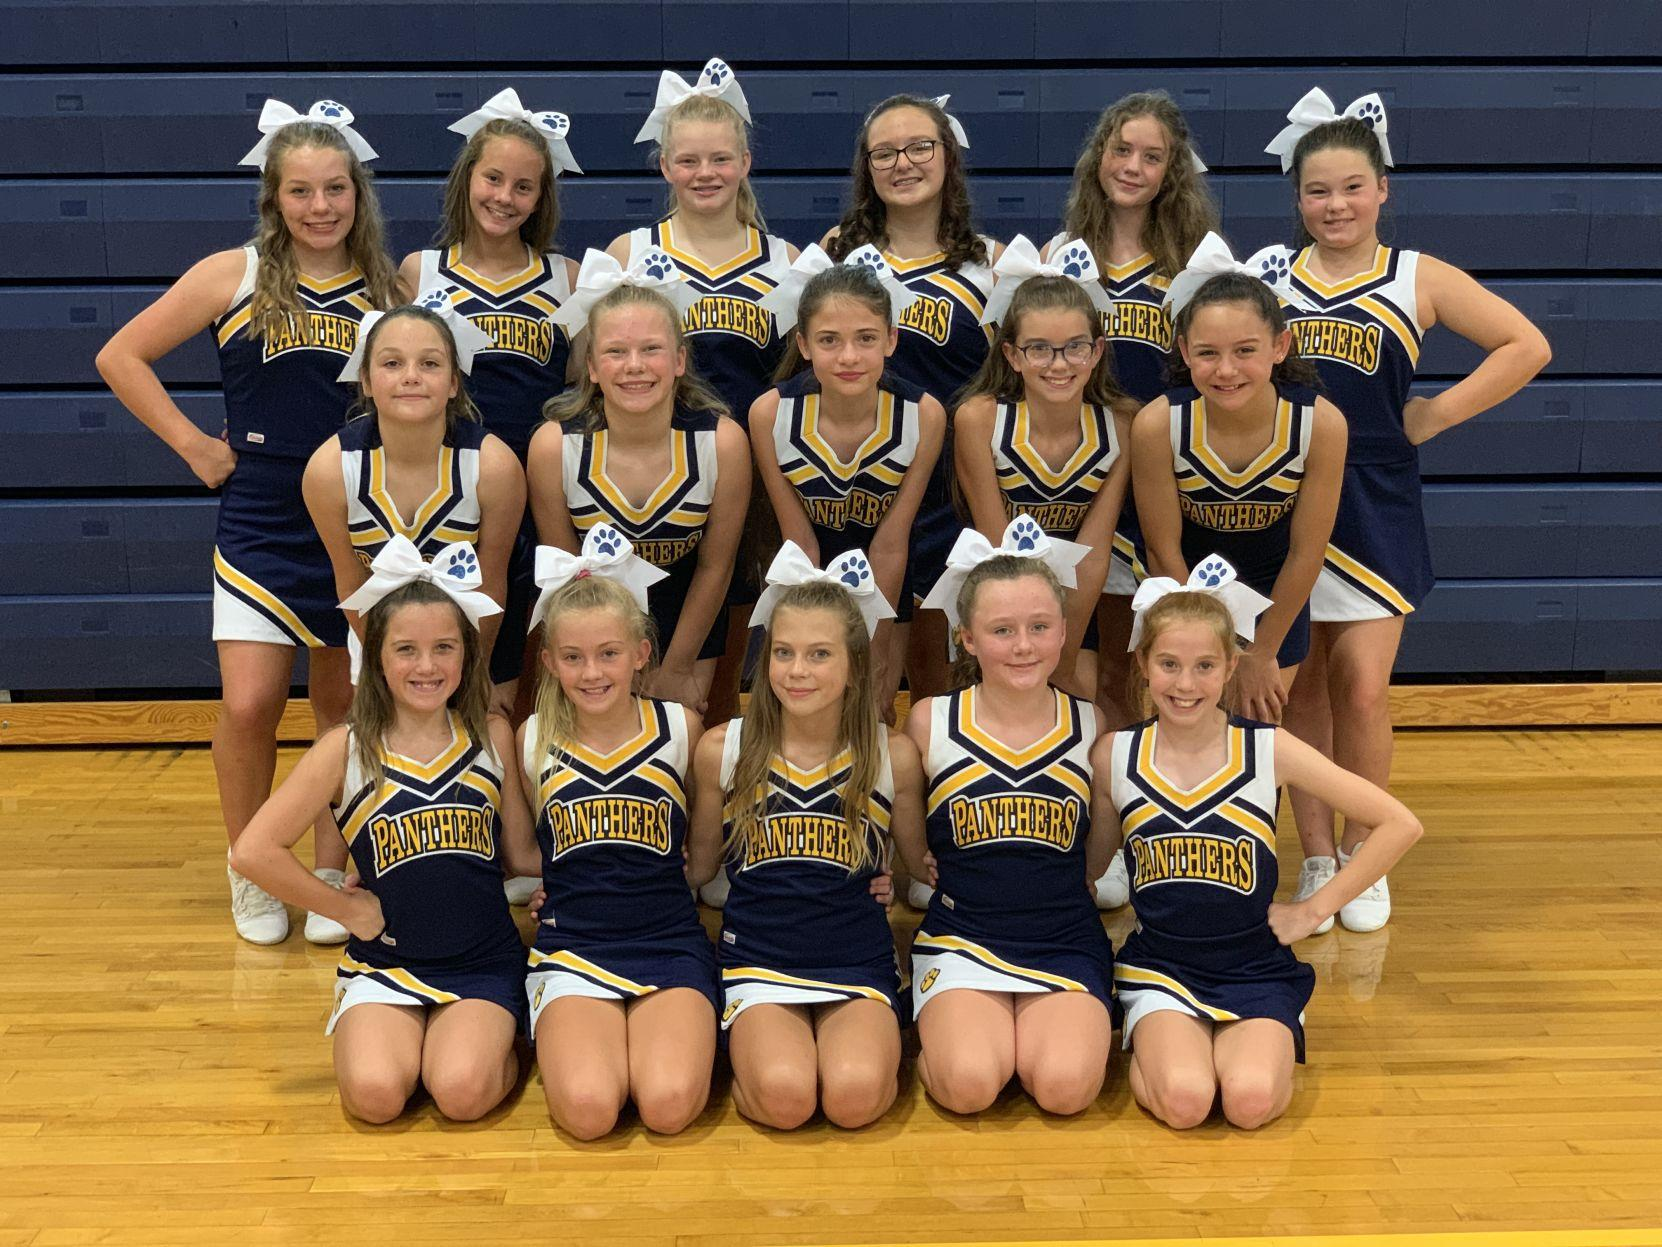 CHMS 20019-2020 Cheerleaders